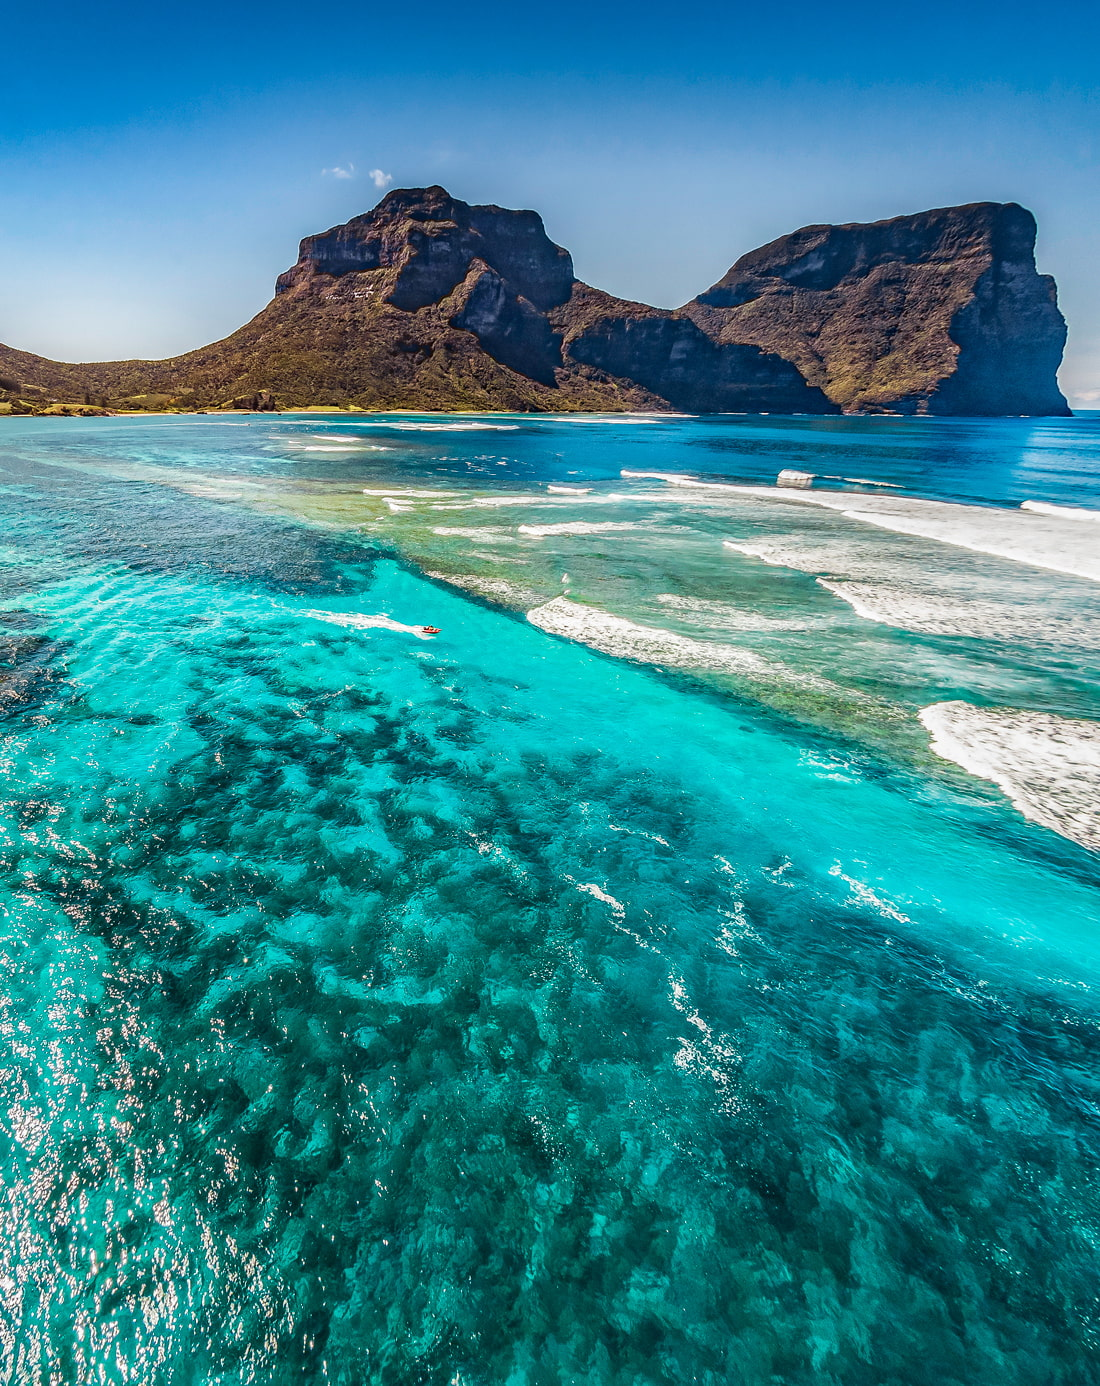 Australia's Most Underrated Islands